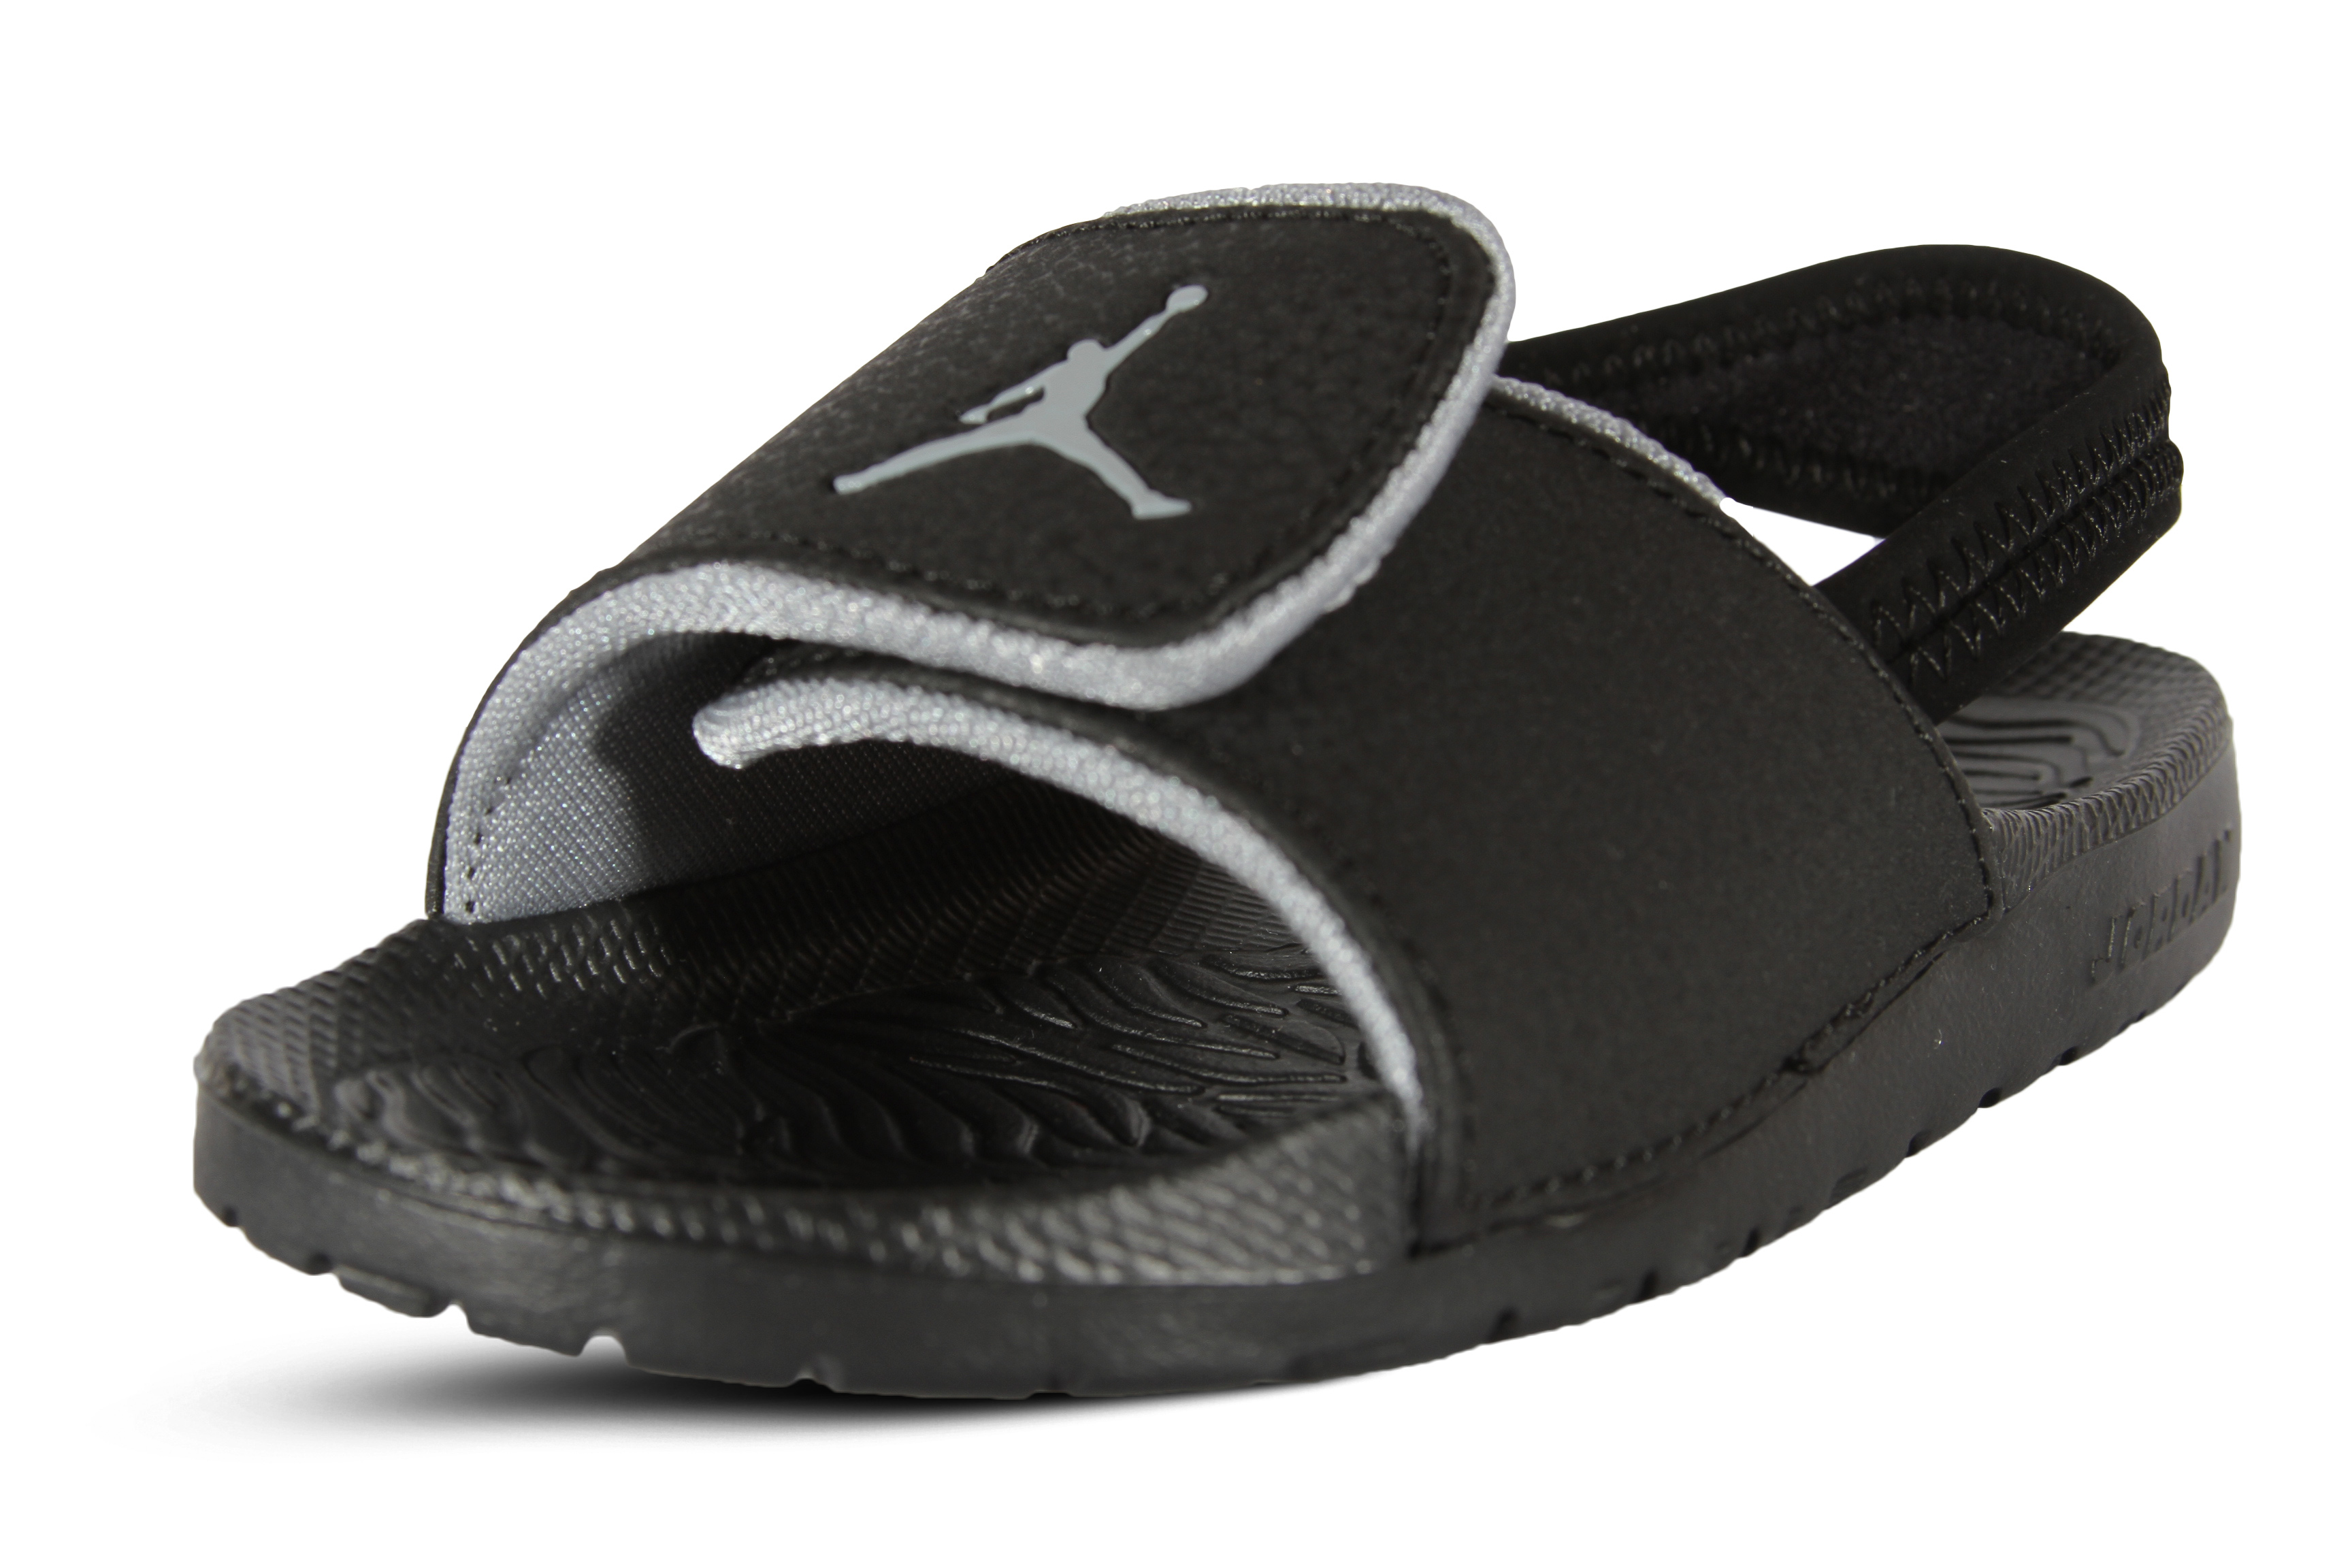 e032051a5622 Jordan Hydro 6 BT Boy s Toddlers (Baby   Infant) Slide Sandals 881478-011